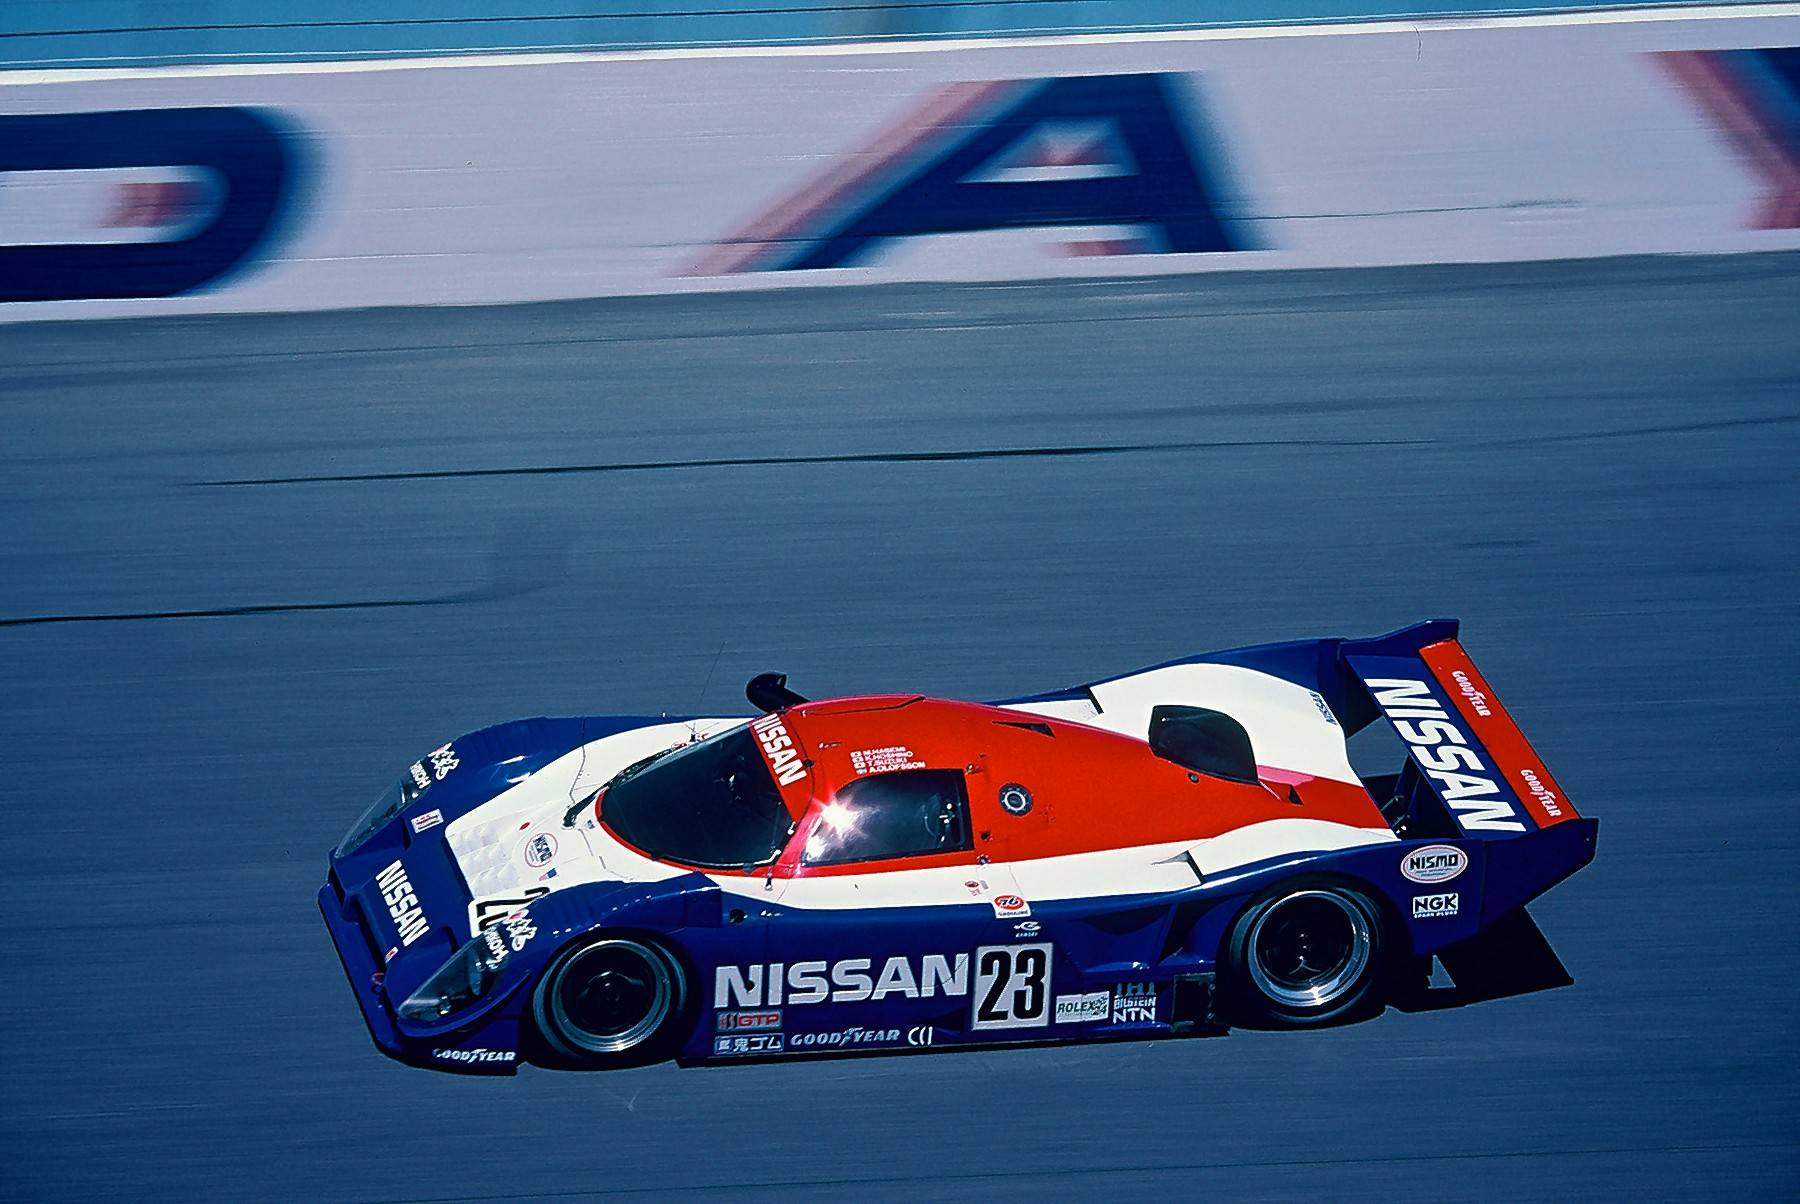 No. 15. Nissan R91CP, winner of the Daytona 24 Hour in 1992.